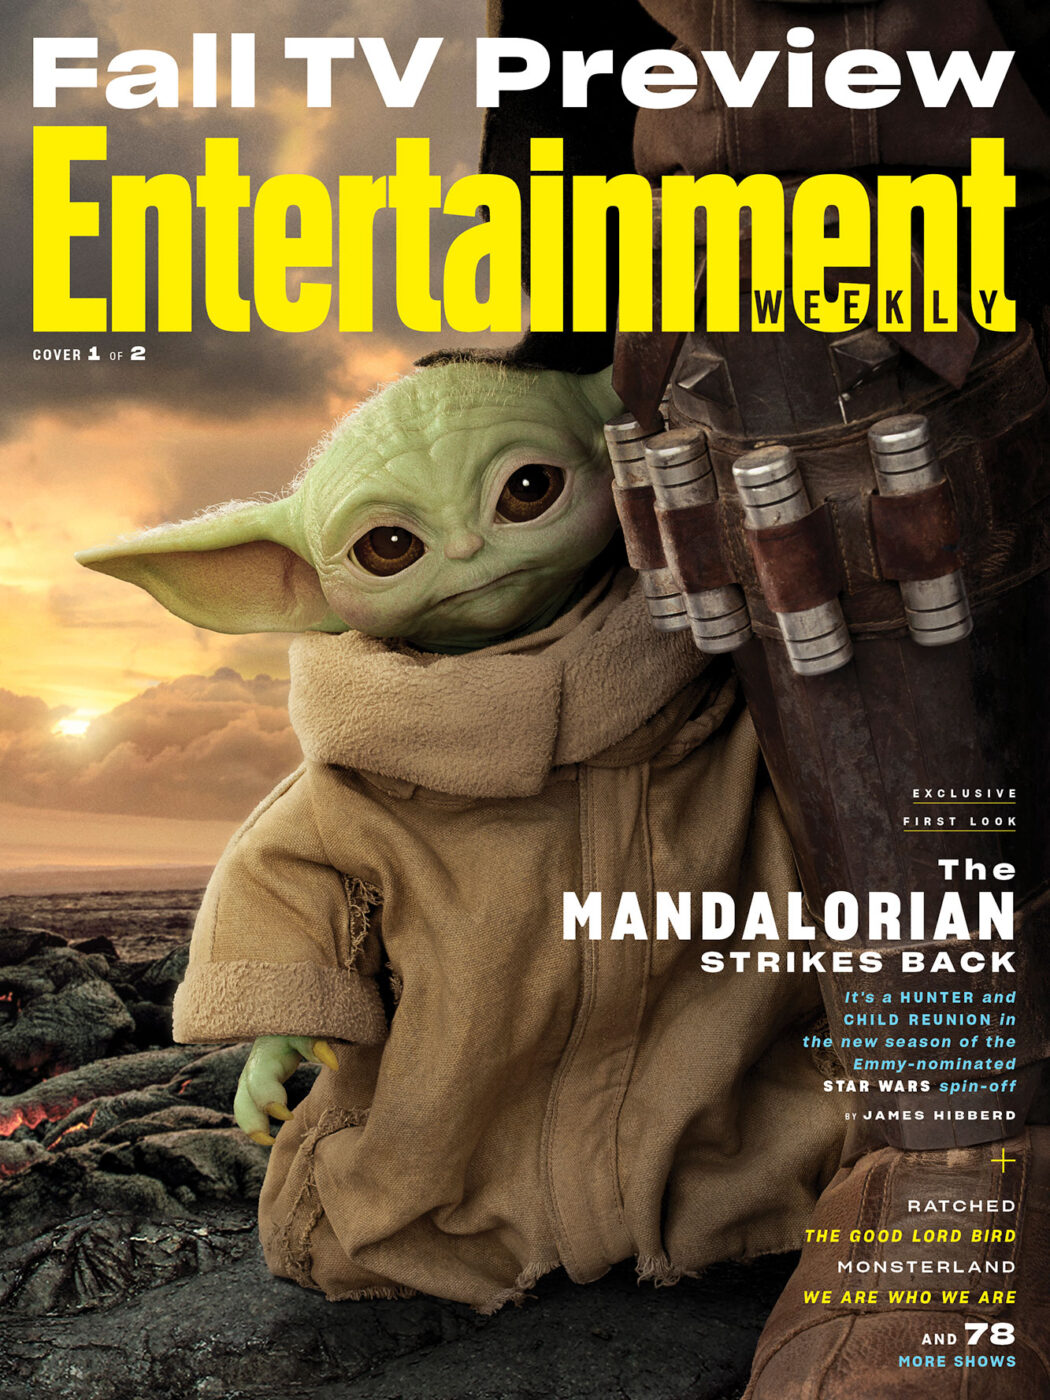 Entertainment Weekly Fall Preview cover featuring The Mandalorian.